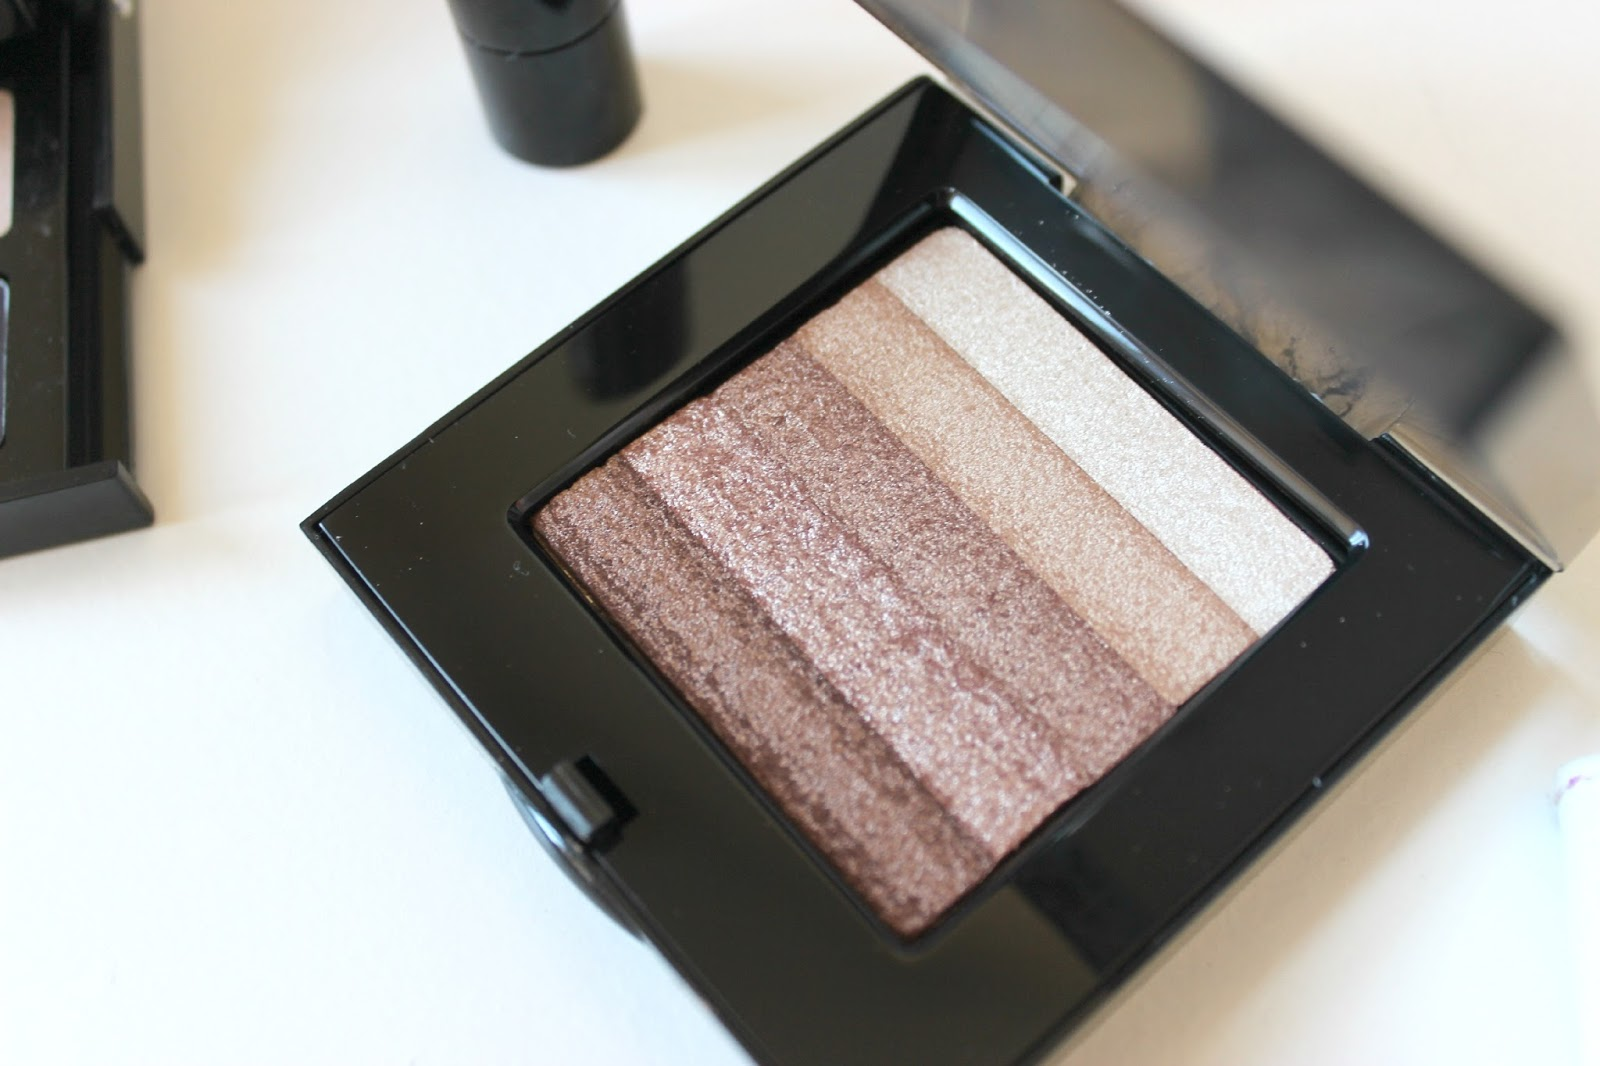 A picture of the Bobbi Brown Sandstone Shimmer Brick